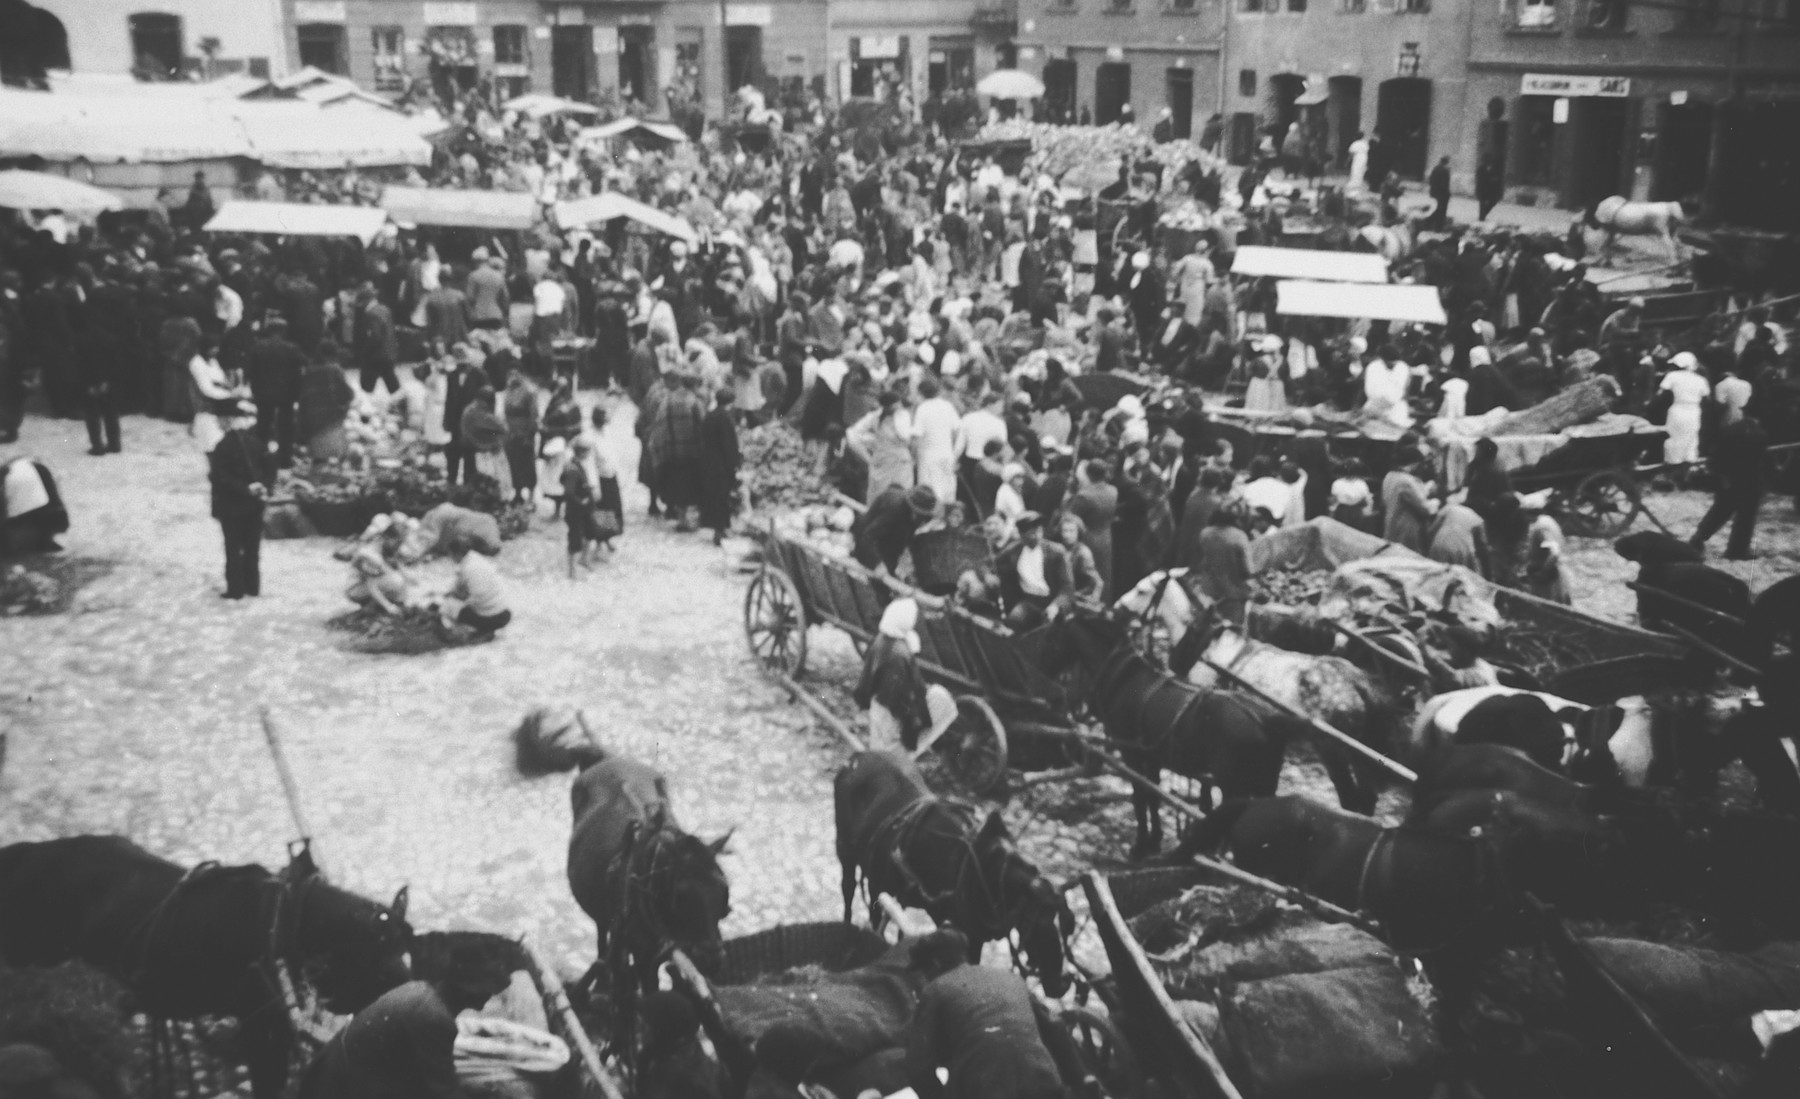 Horse-drawn carts line up on the outskirts of a crowded outdoor market in Oswiecim, Poland [later Auschwitz] before the war.